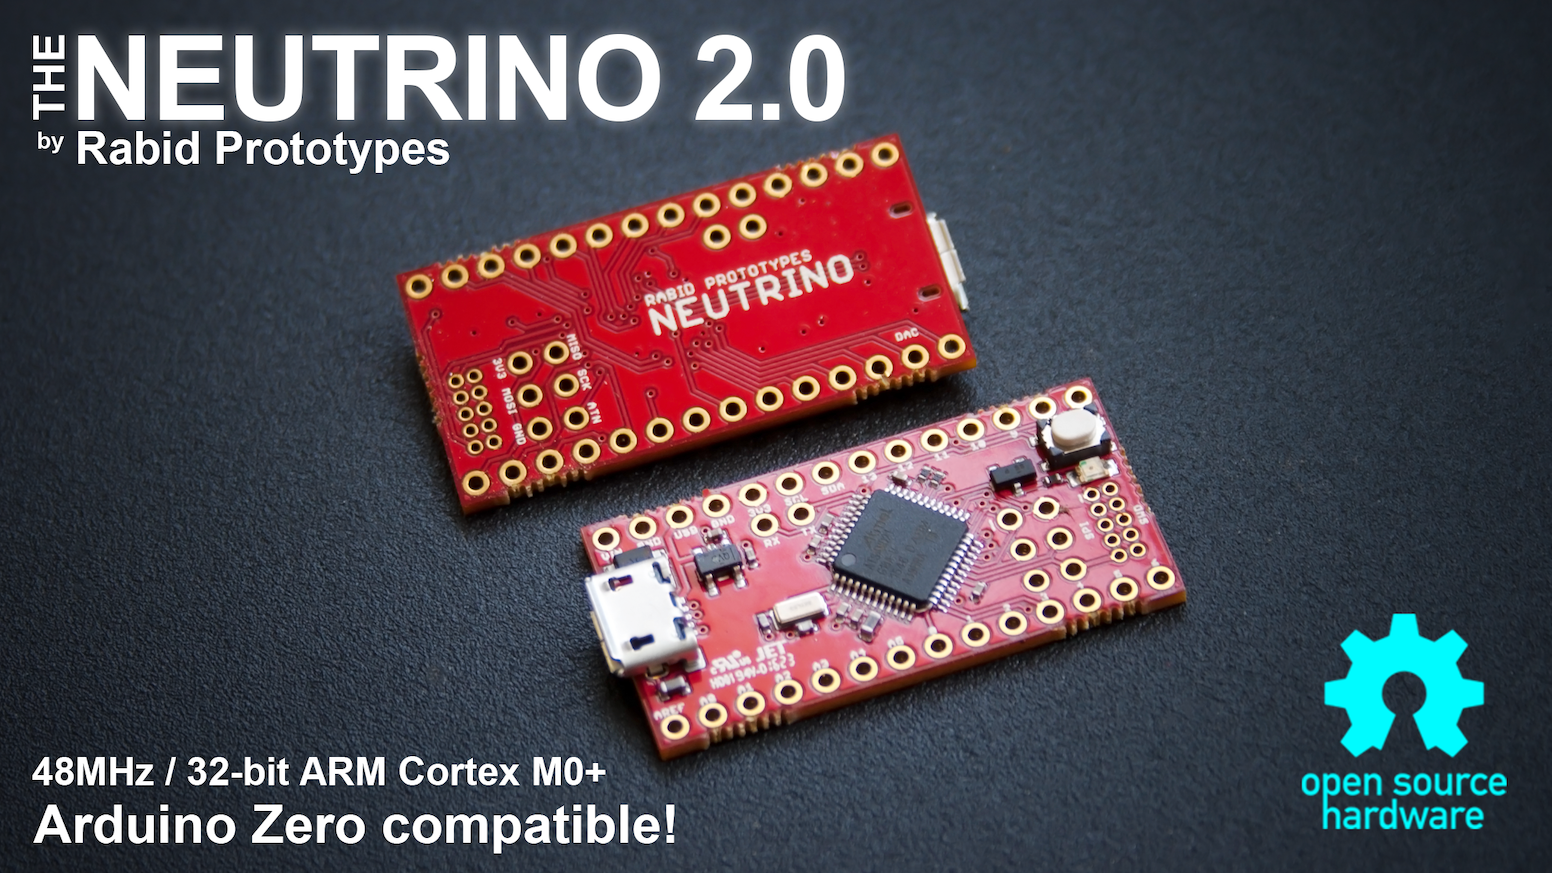 Neutrino 20 The Tiny 32 Bit Arduino Zero Compatible By Rabid Electric Circuit Board Processor Tshirts Featuring A 48mhz Arm Cortex M0 Is Fully